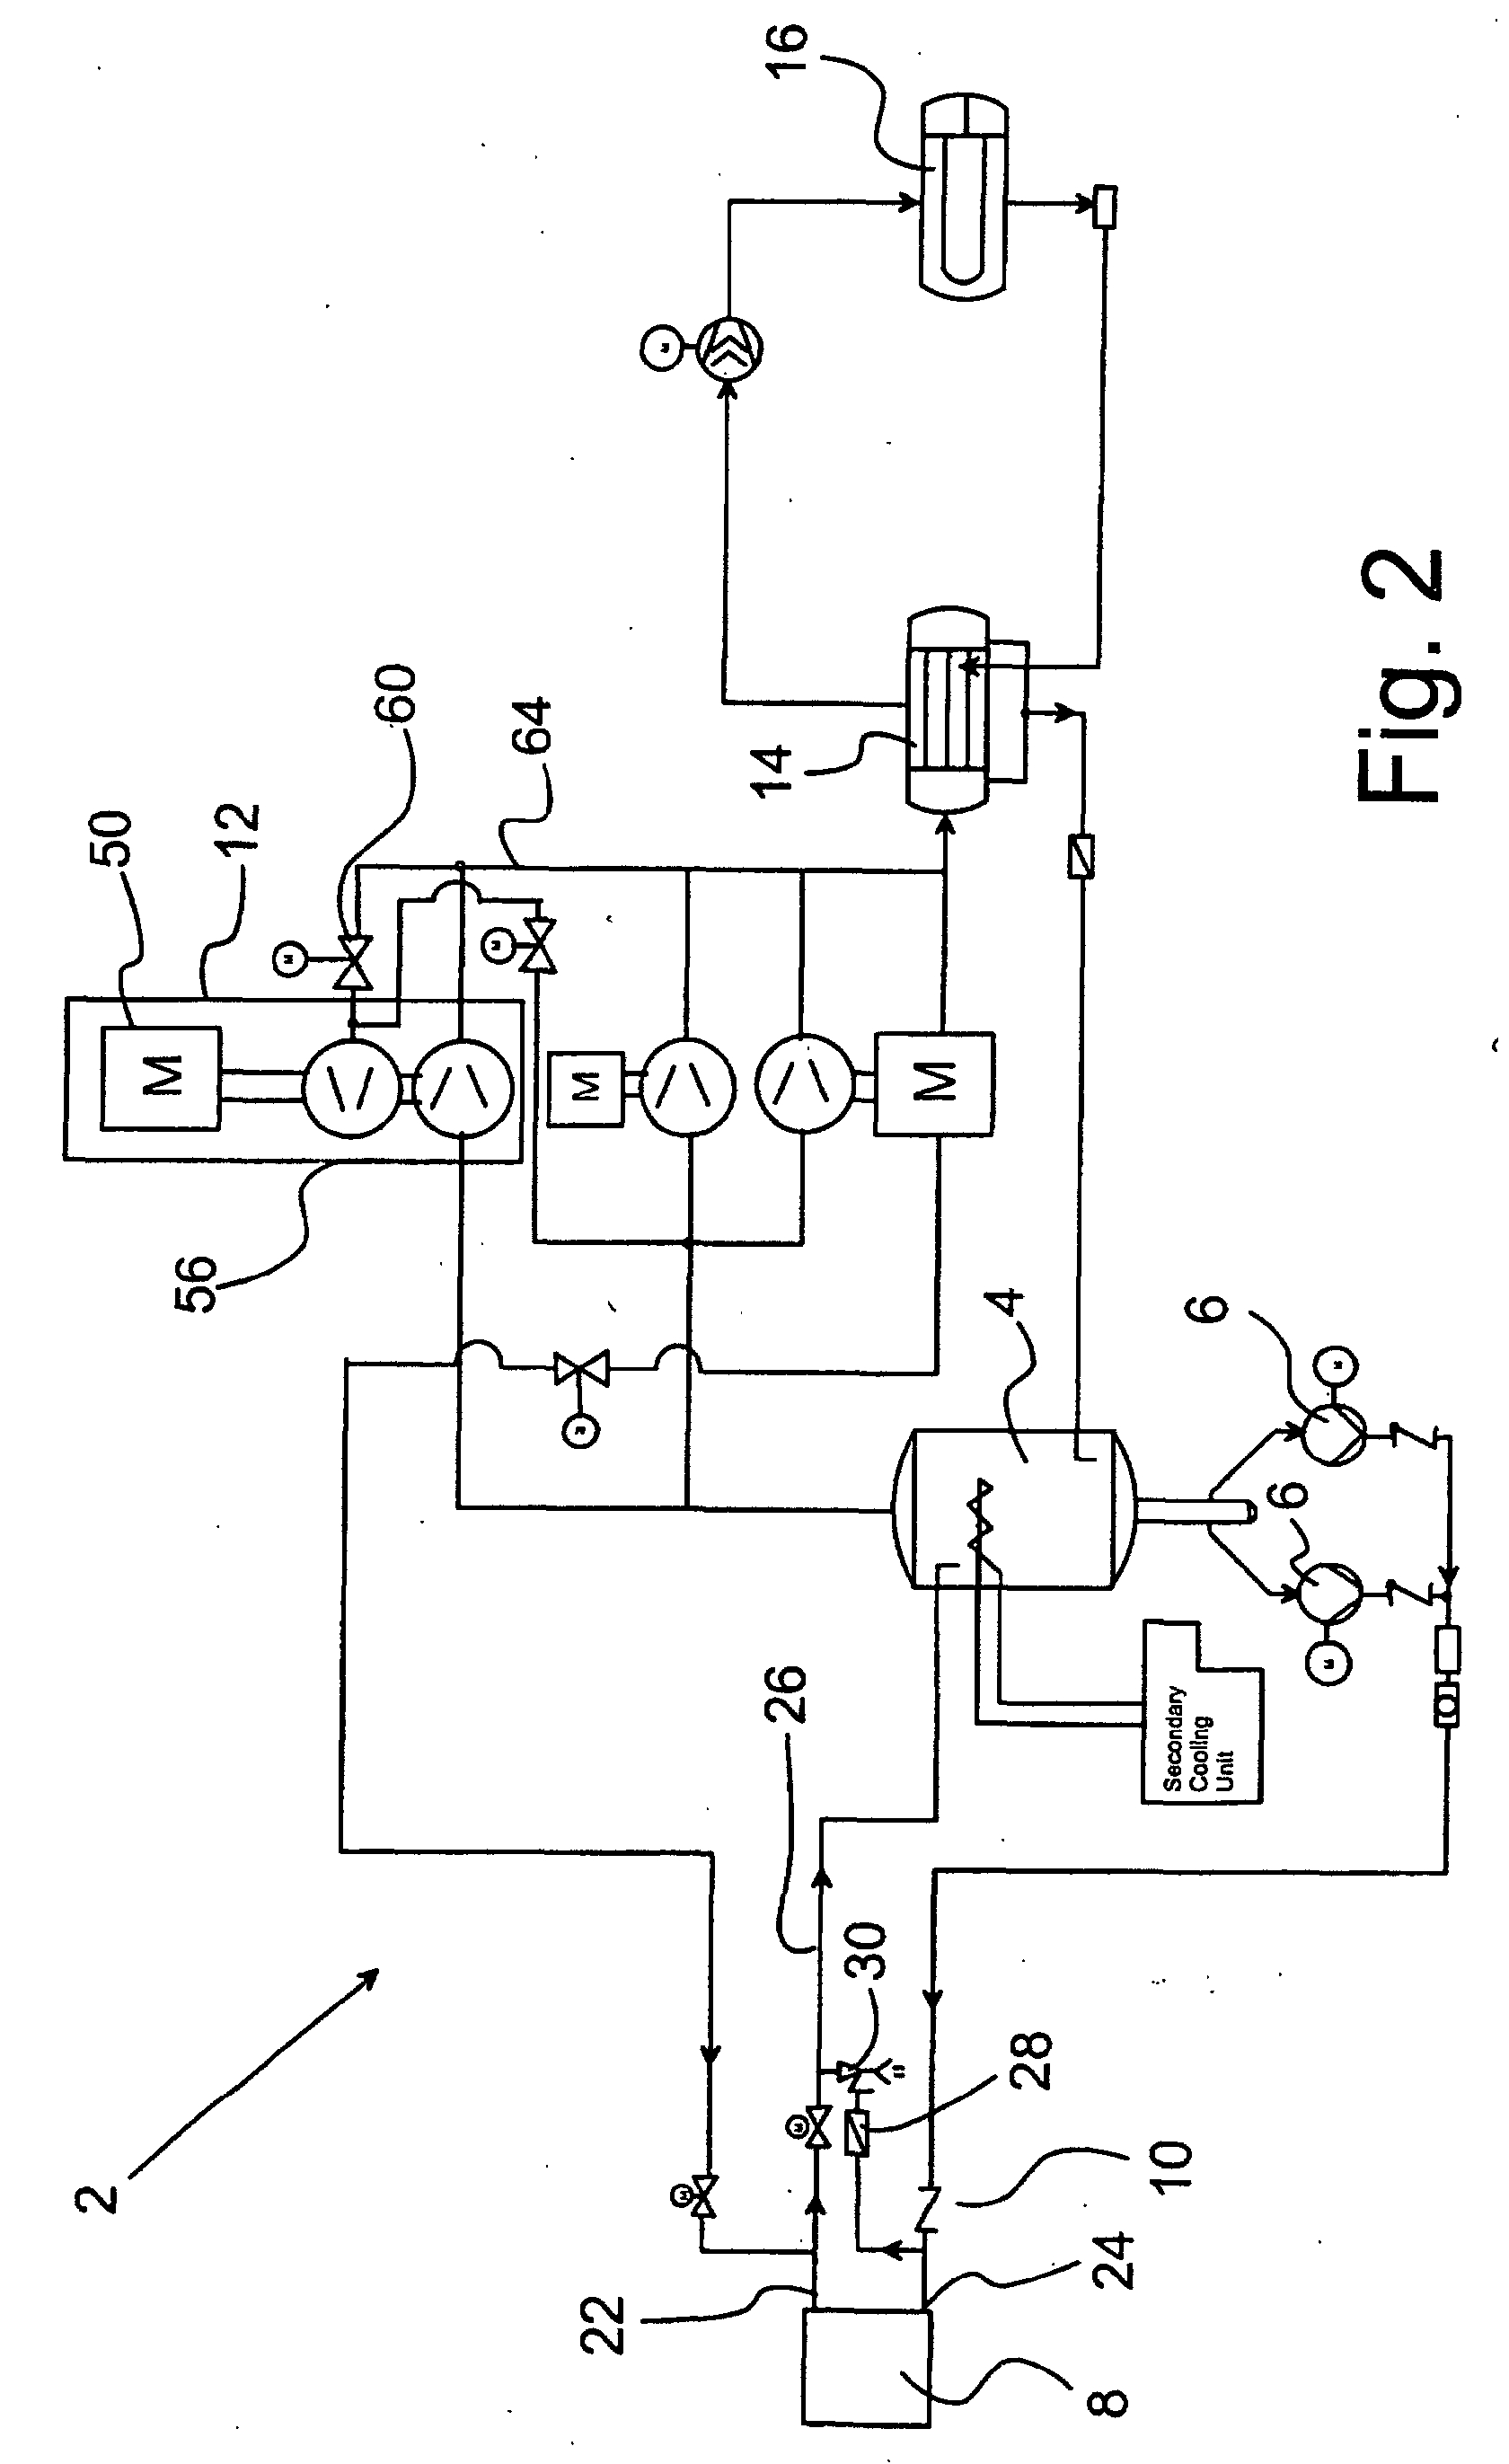 Wiring Diagram For Evaporator - List of Wiring Diagrams on